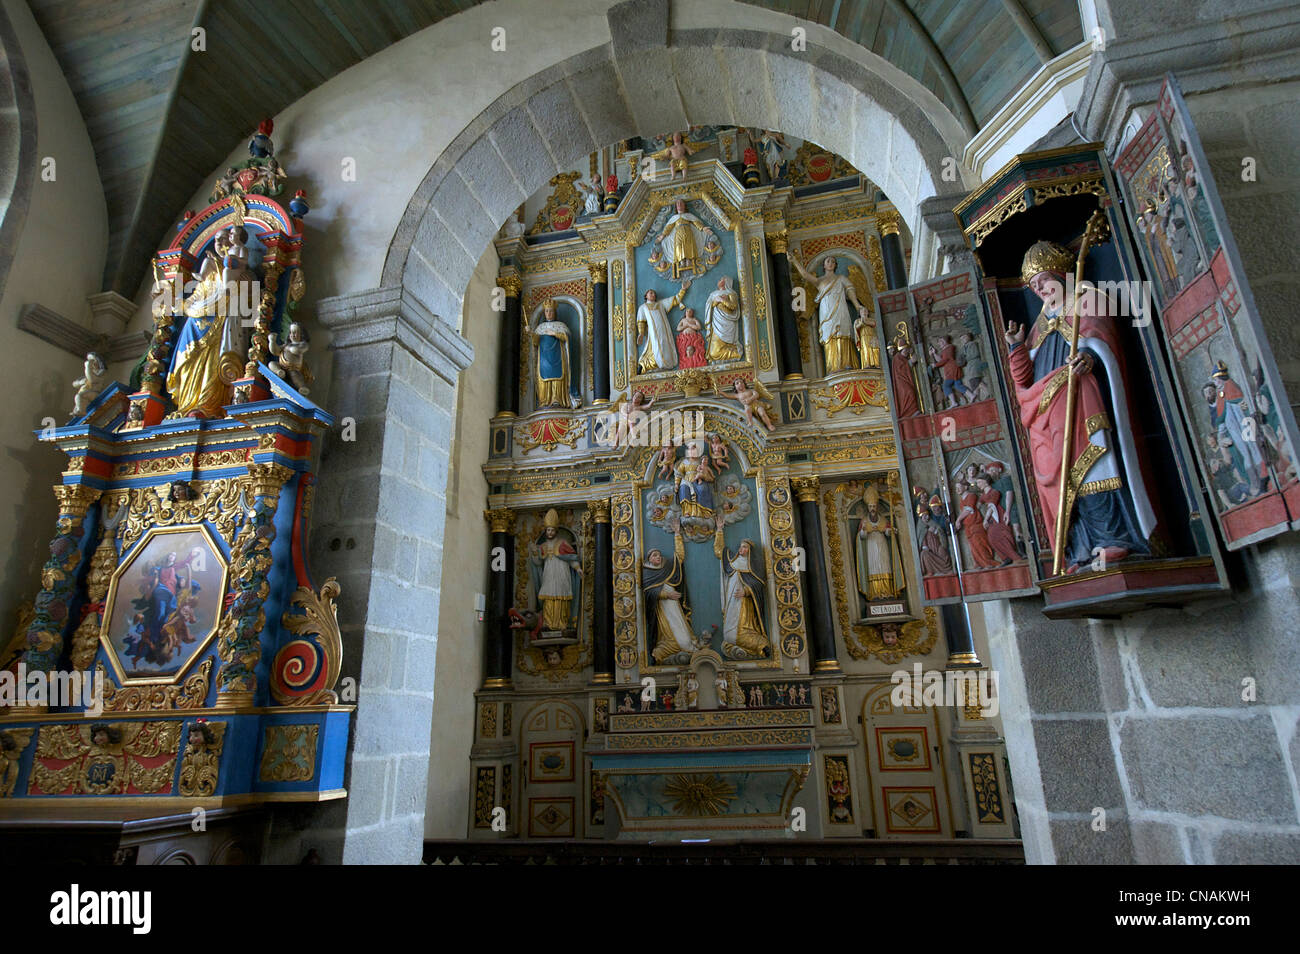 France, Finistere, stop on the Way of St James, St Thegonnec, parish enclosure - Stock Image